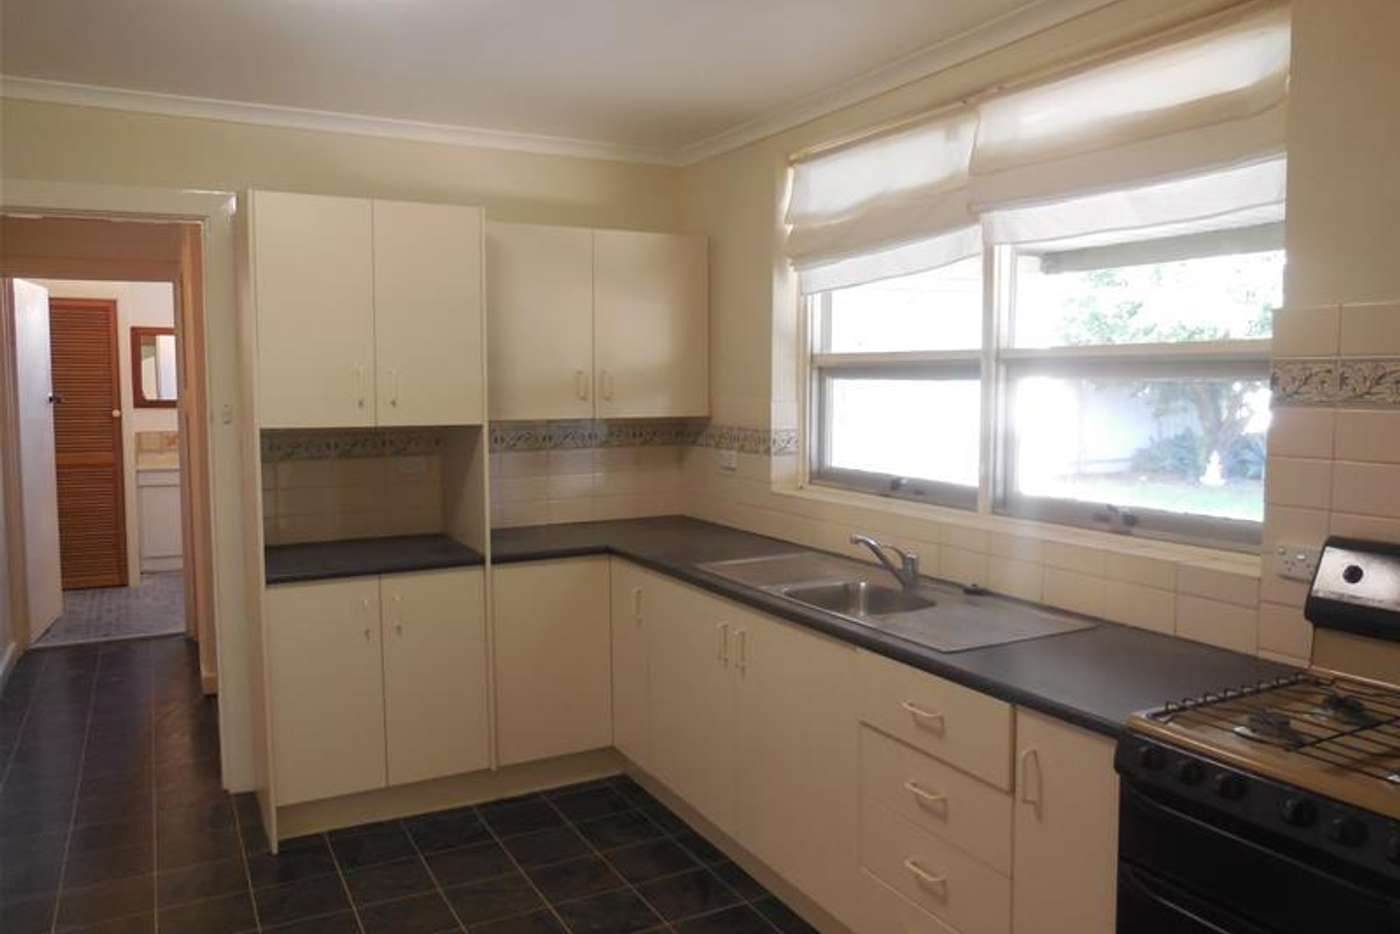 Seventh view of Homely house listing, 54 Lewis Street, Brighton SA 5048